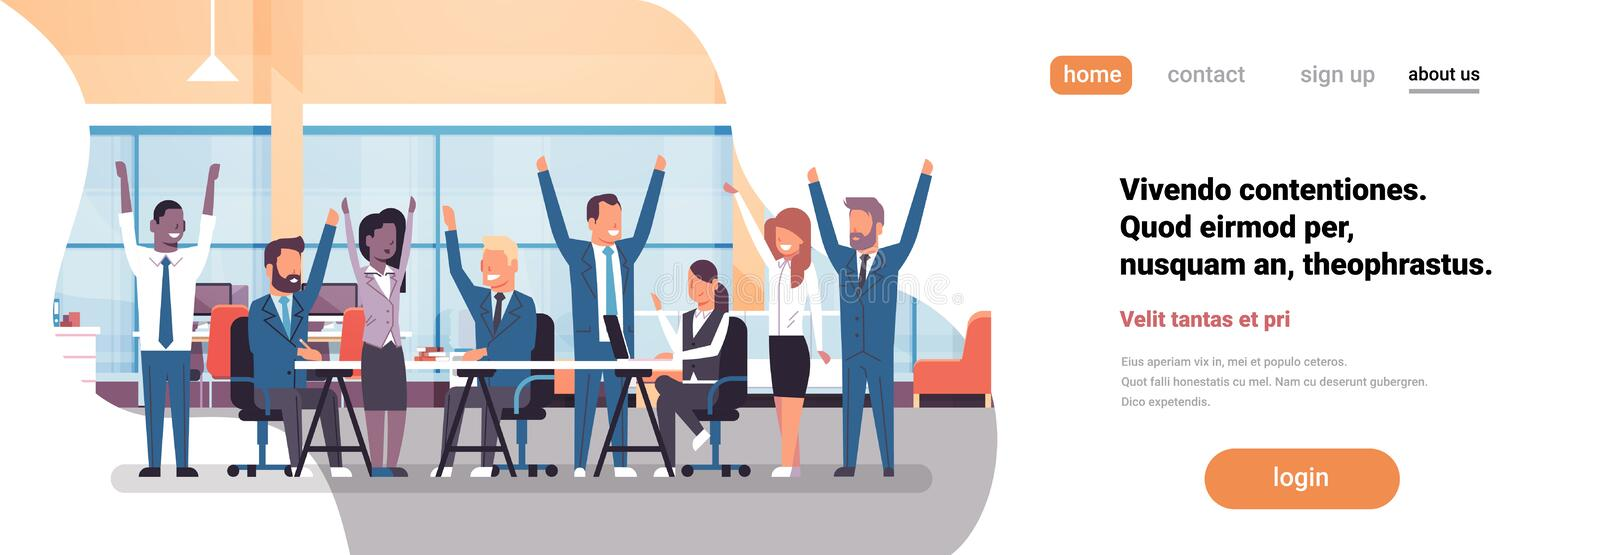 Cheerful business team sitting together people group successful teamwork concept man woman raised hands modern office vector illustration